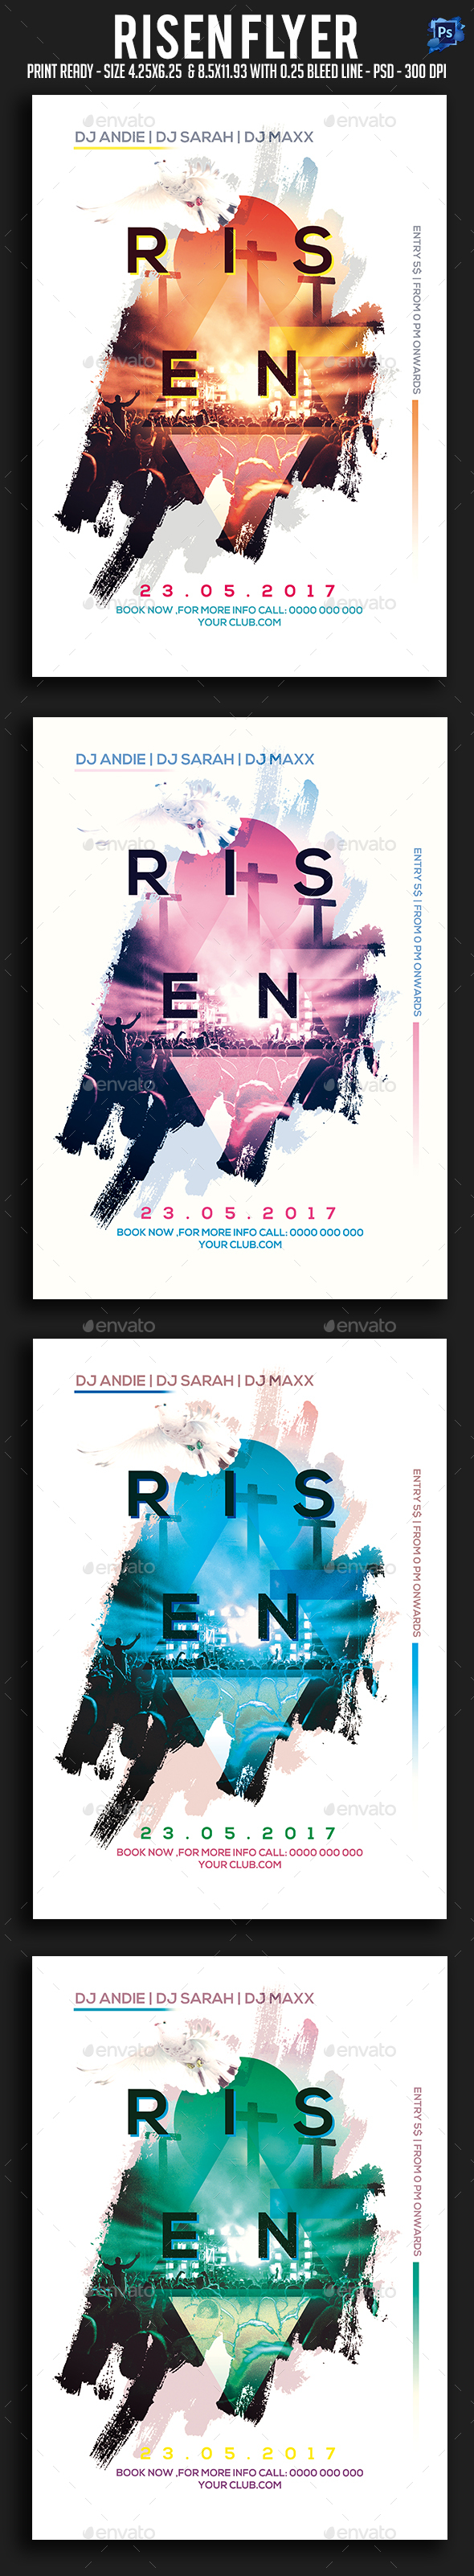 Risen Flyer - Clubs & Parties Events